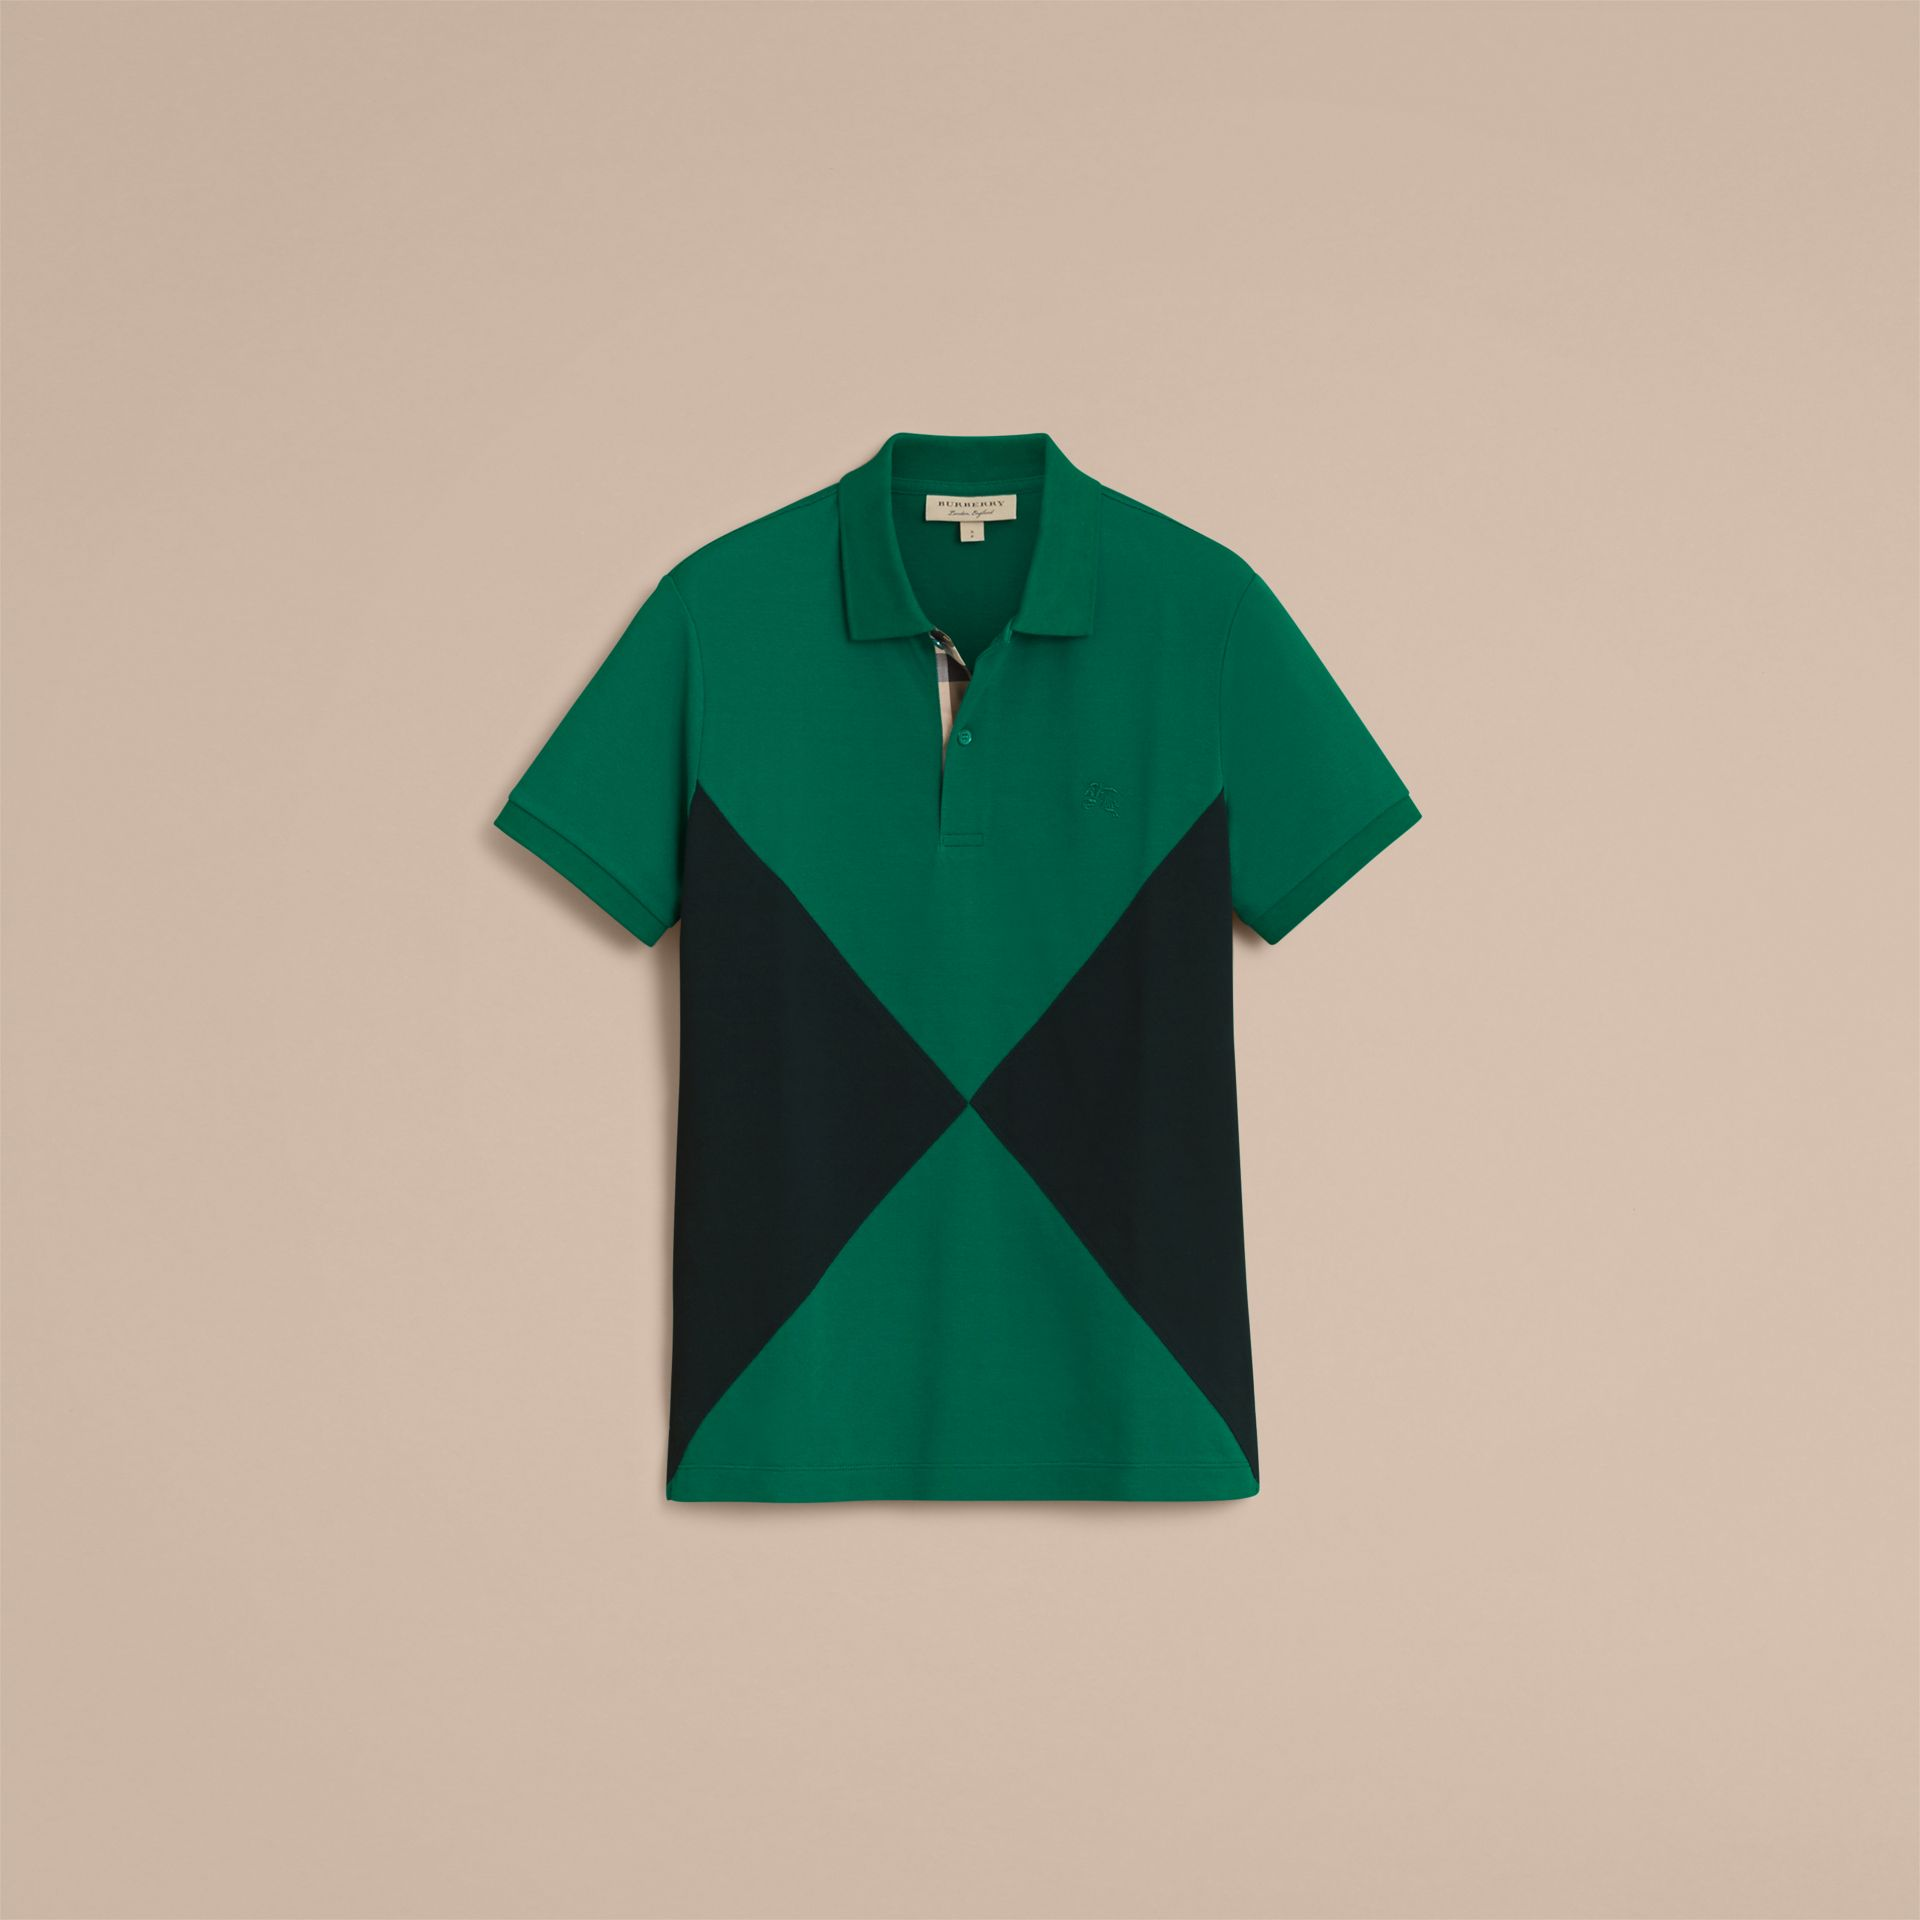 Geometric Motif Cotton Piqué Polo Shirt with Check Placket Bright Bottle Green - gallery image 4